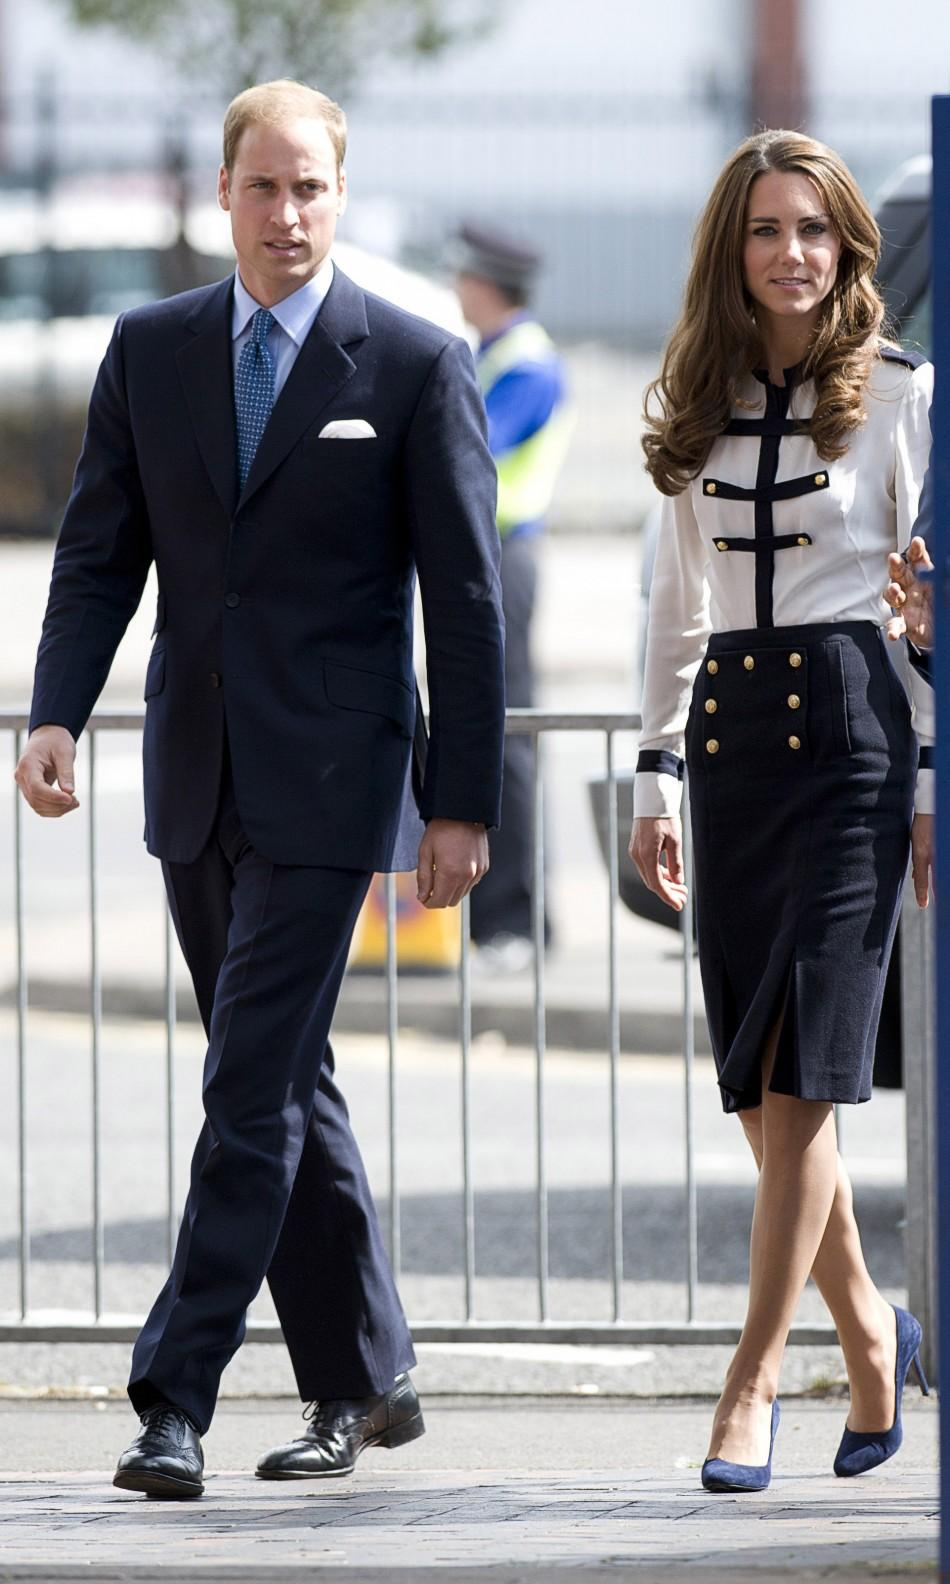 The Future King and Queen of England: Prince William and Catherine Visit Riot Affected Birmingham